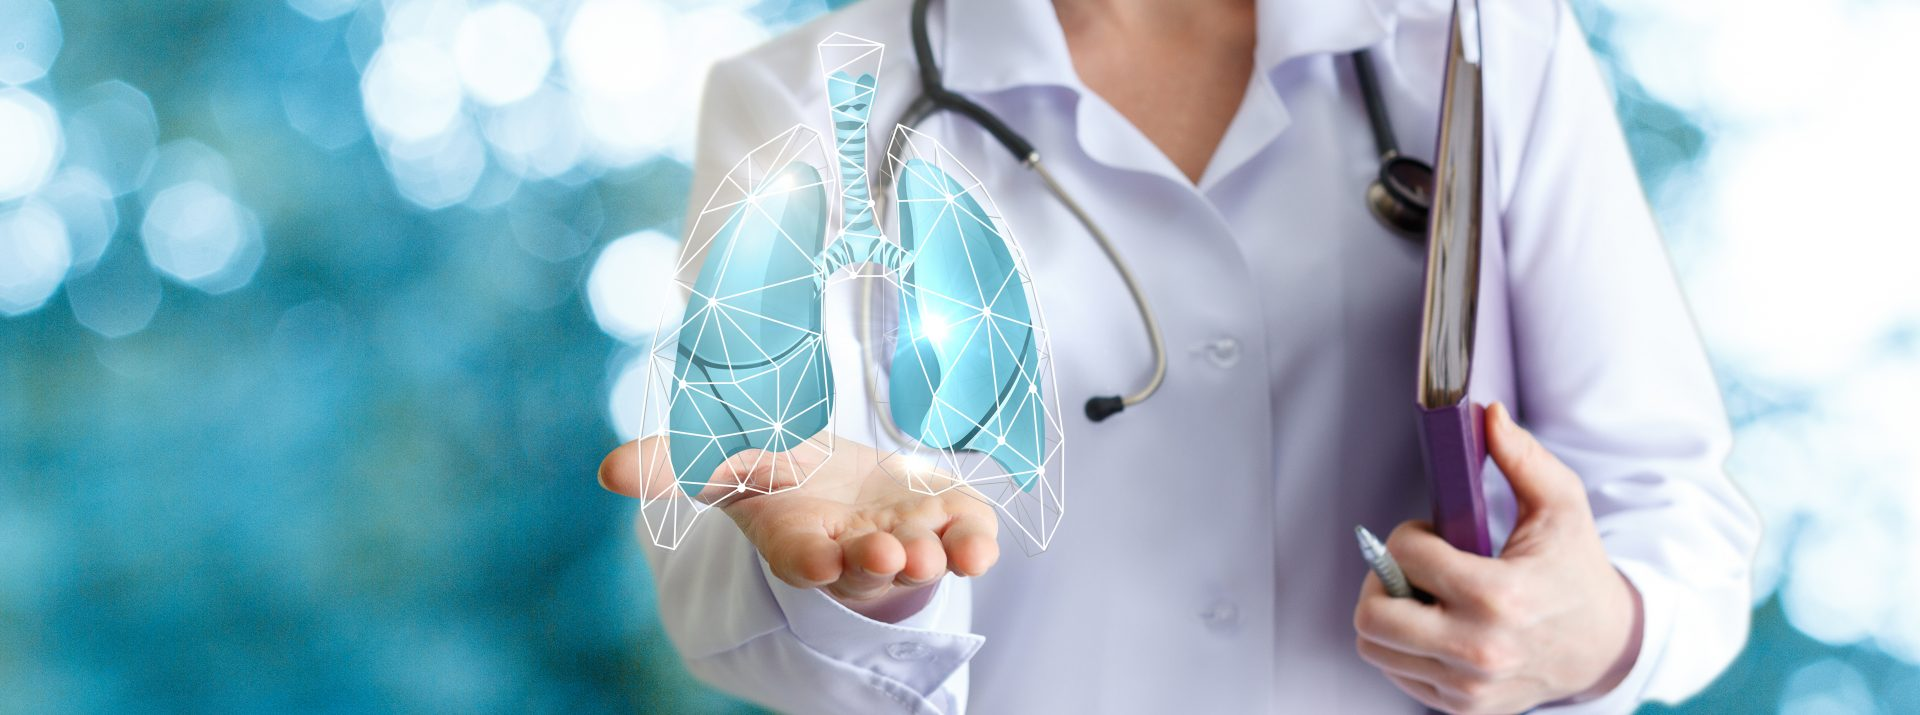 We offer highly specialized lungs based physiotherapy